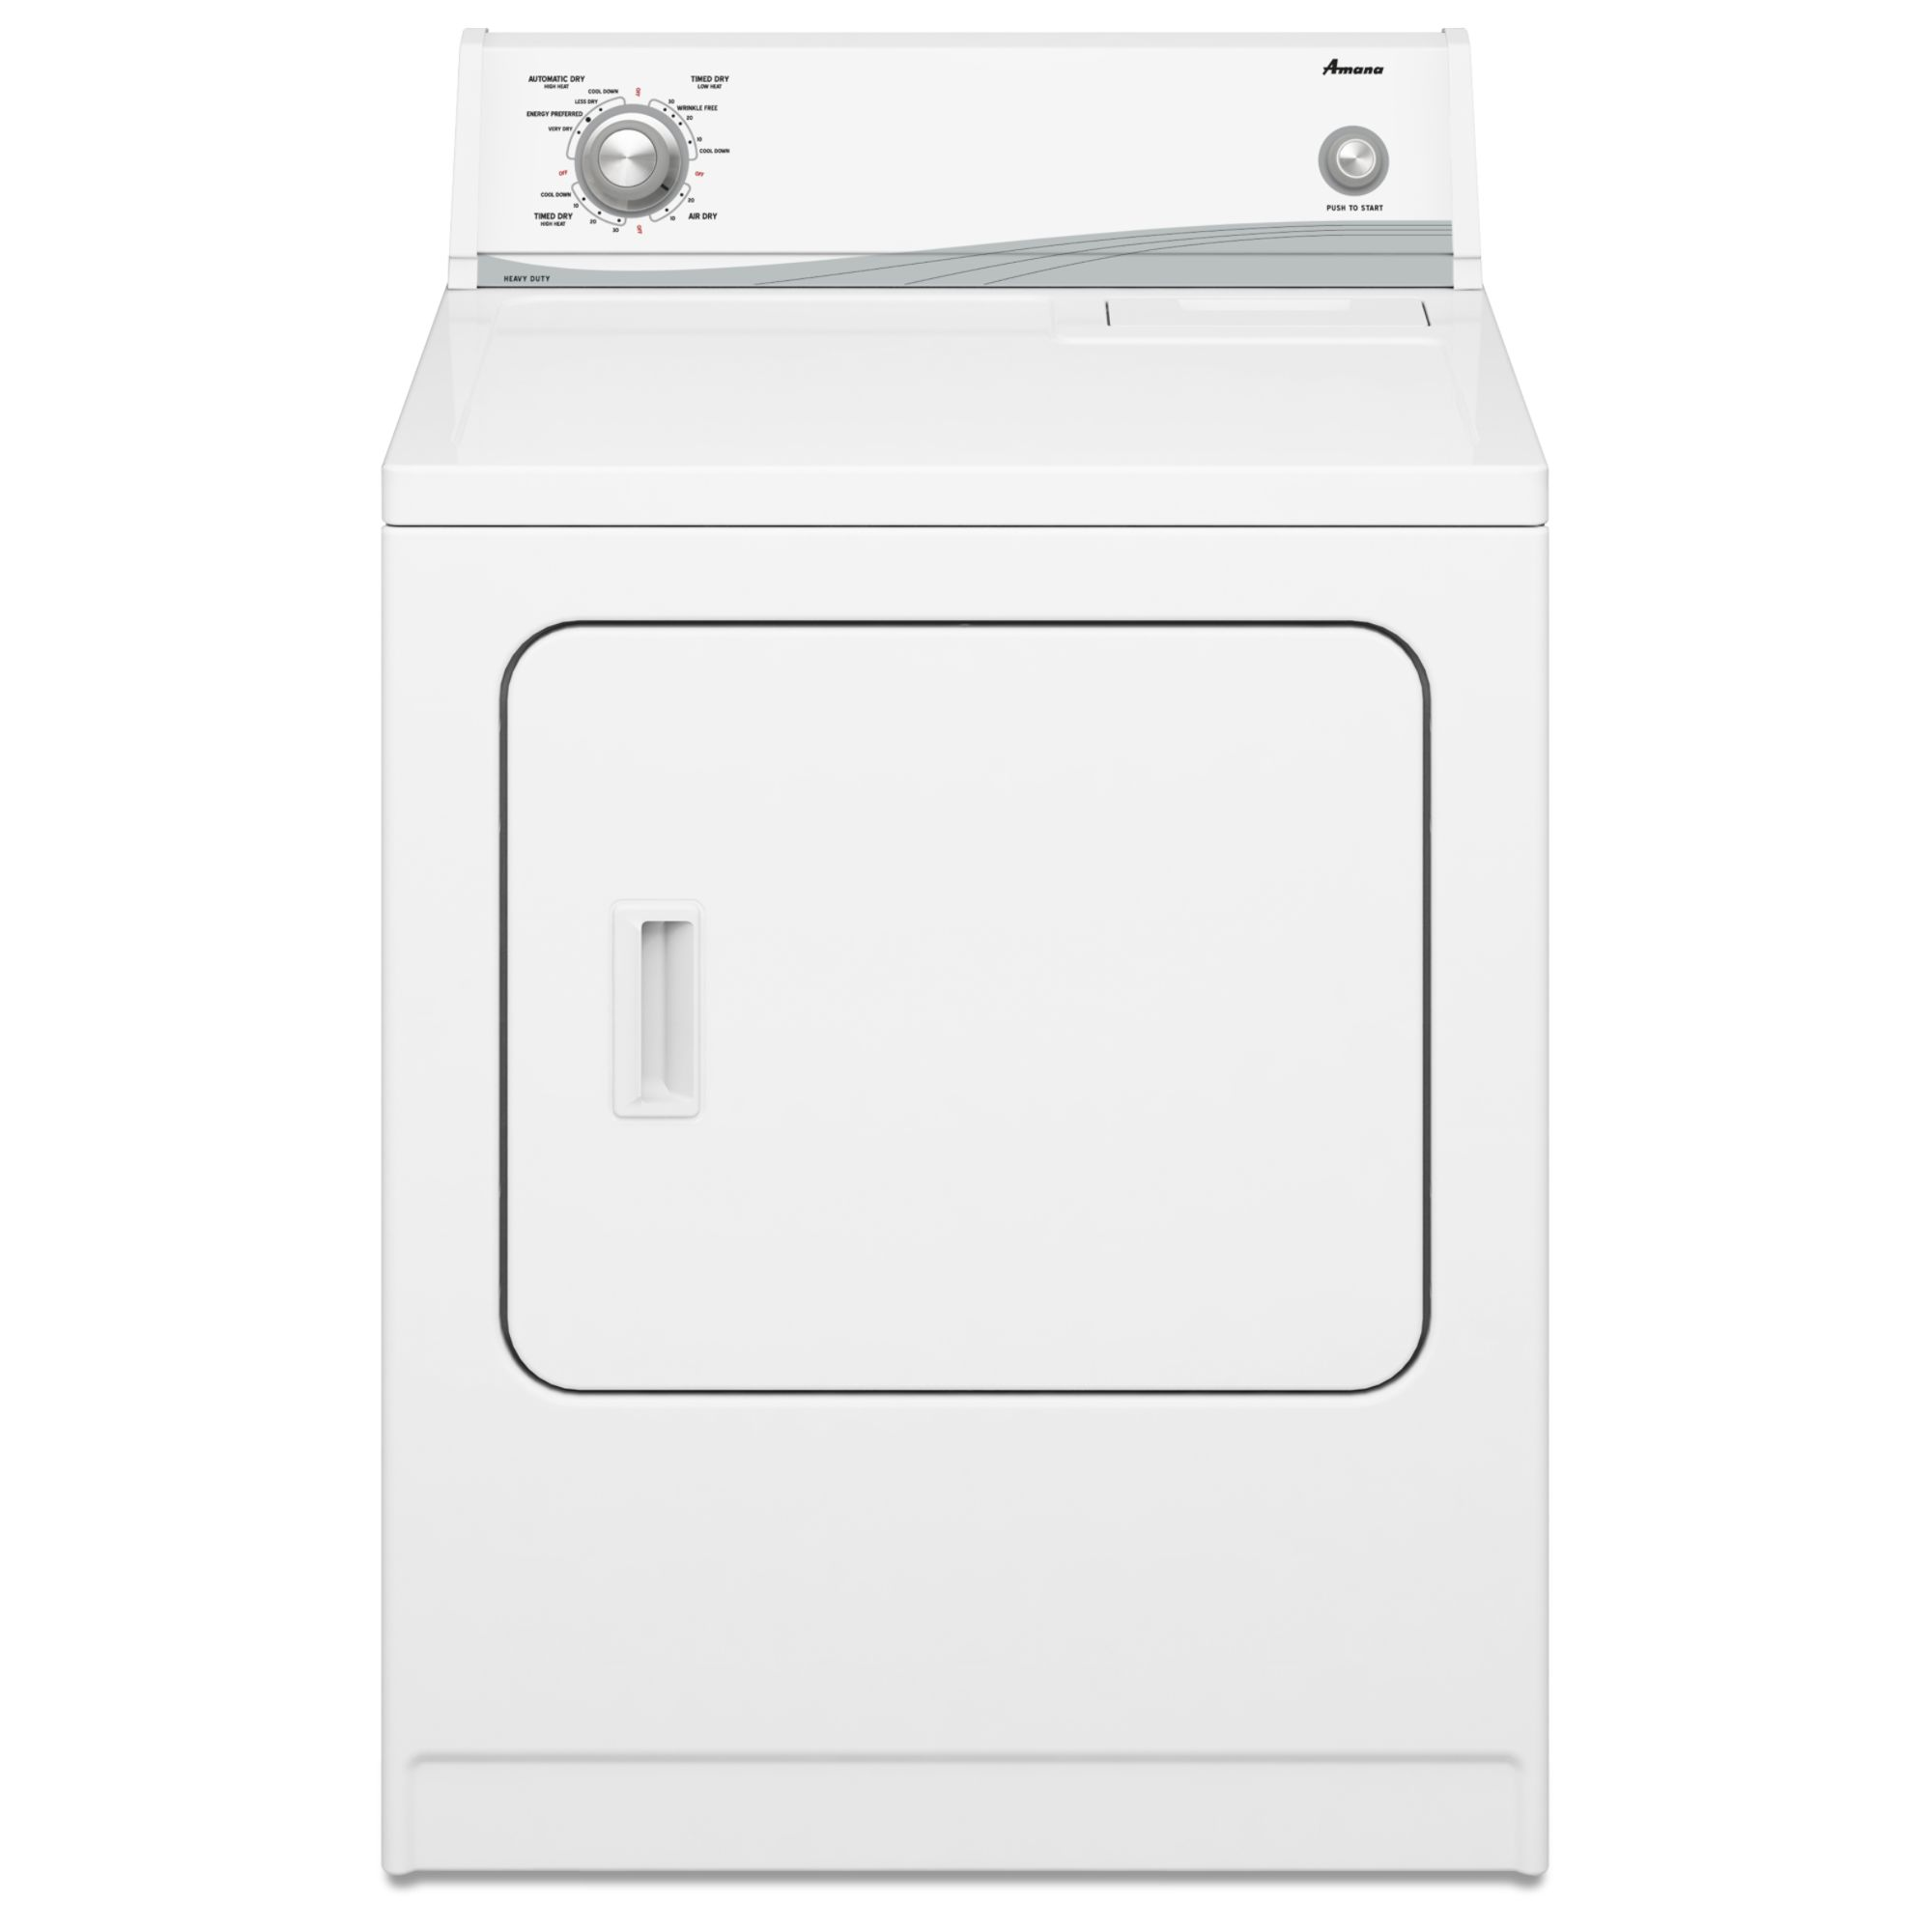 looking for amana model ned5100tq1 dryer repair replacement parts amana ned5100tq1 wiring diagram model [ 2000 x 2000 Pixel ]